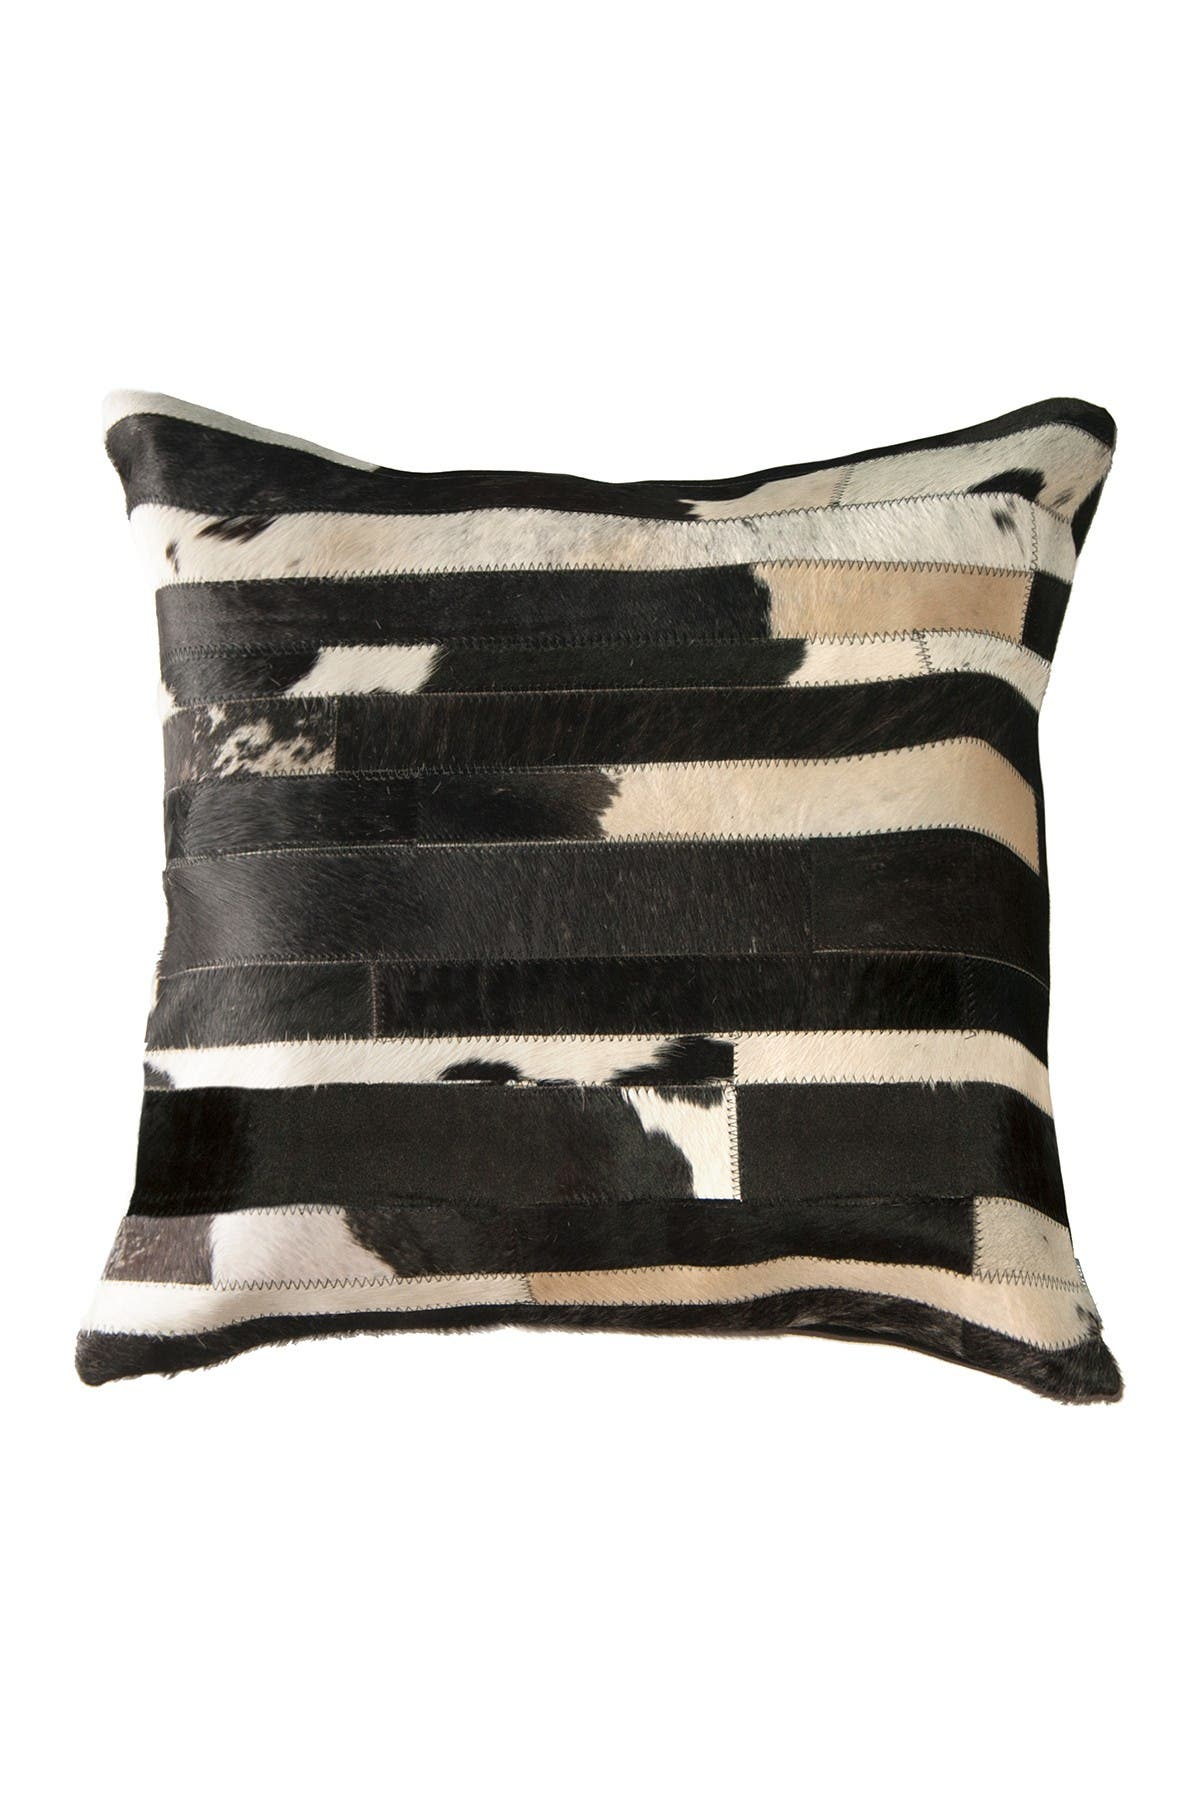 """Image of Natural Torino Classic Large Madrid Genuine Cowhide Pillow - 22""""x22"""" - Black/White"""